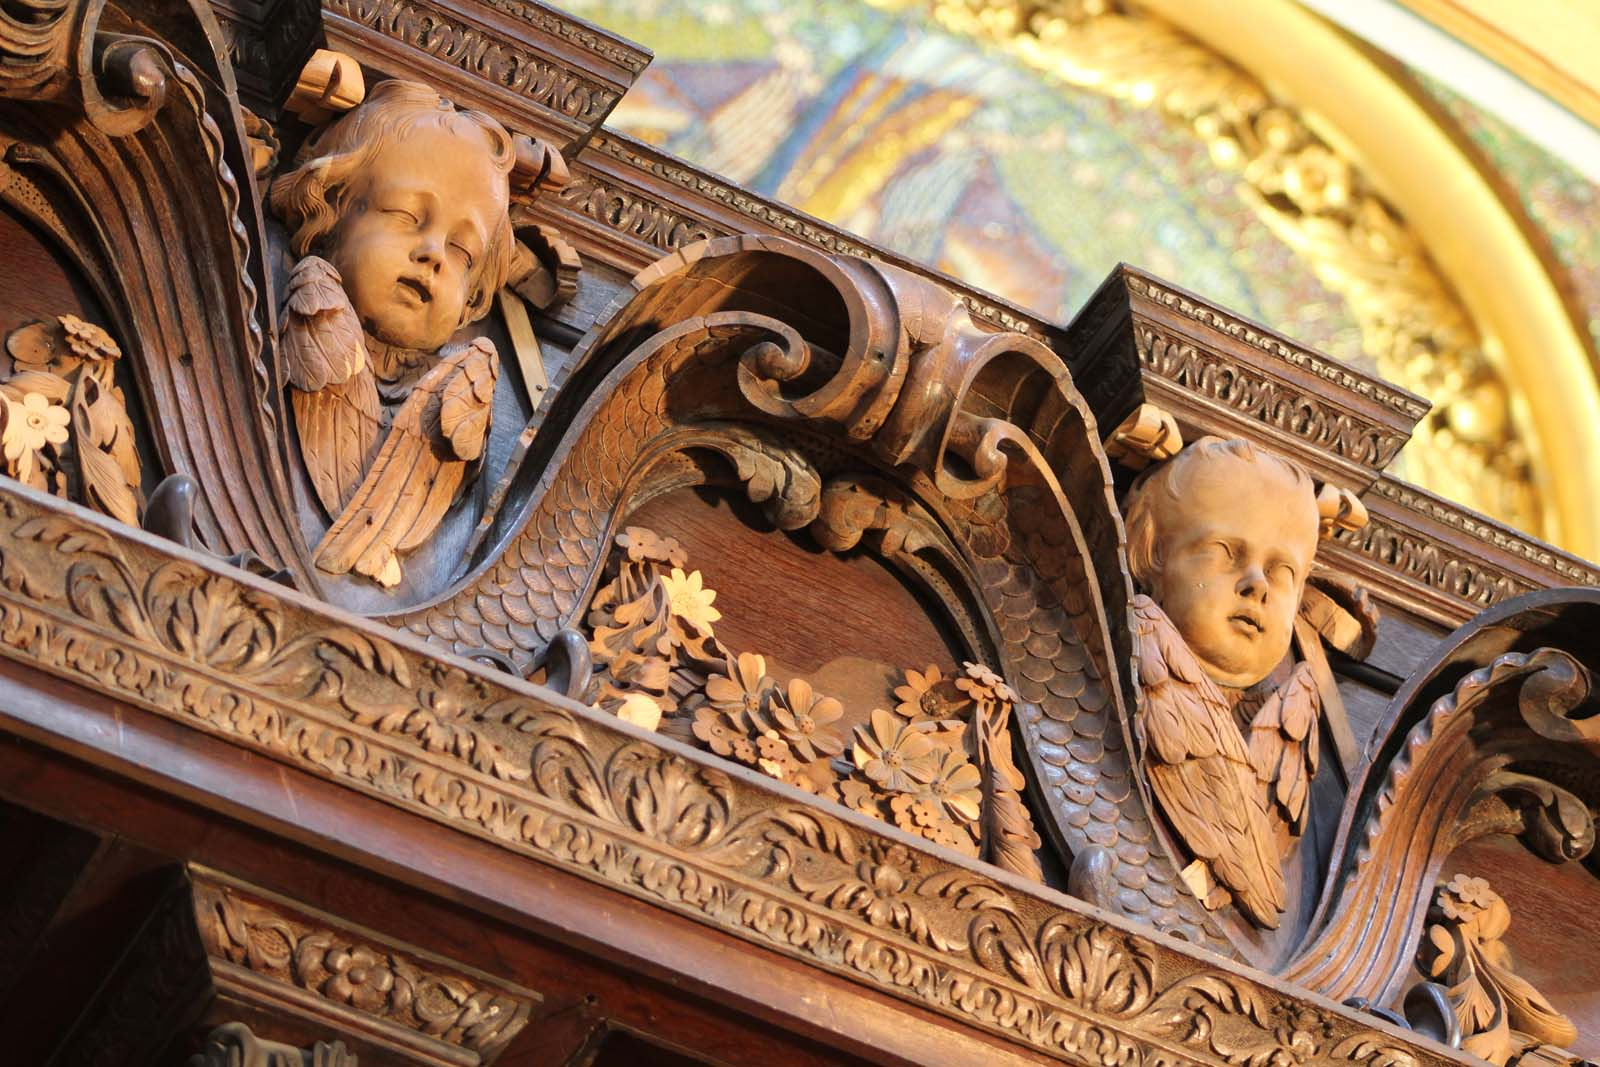 close up of wooden carved scroll work with cherubic faces and foliage